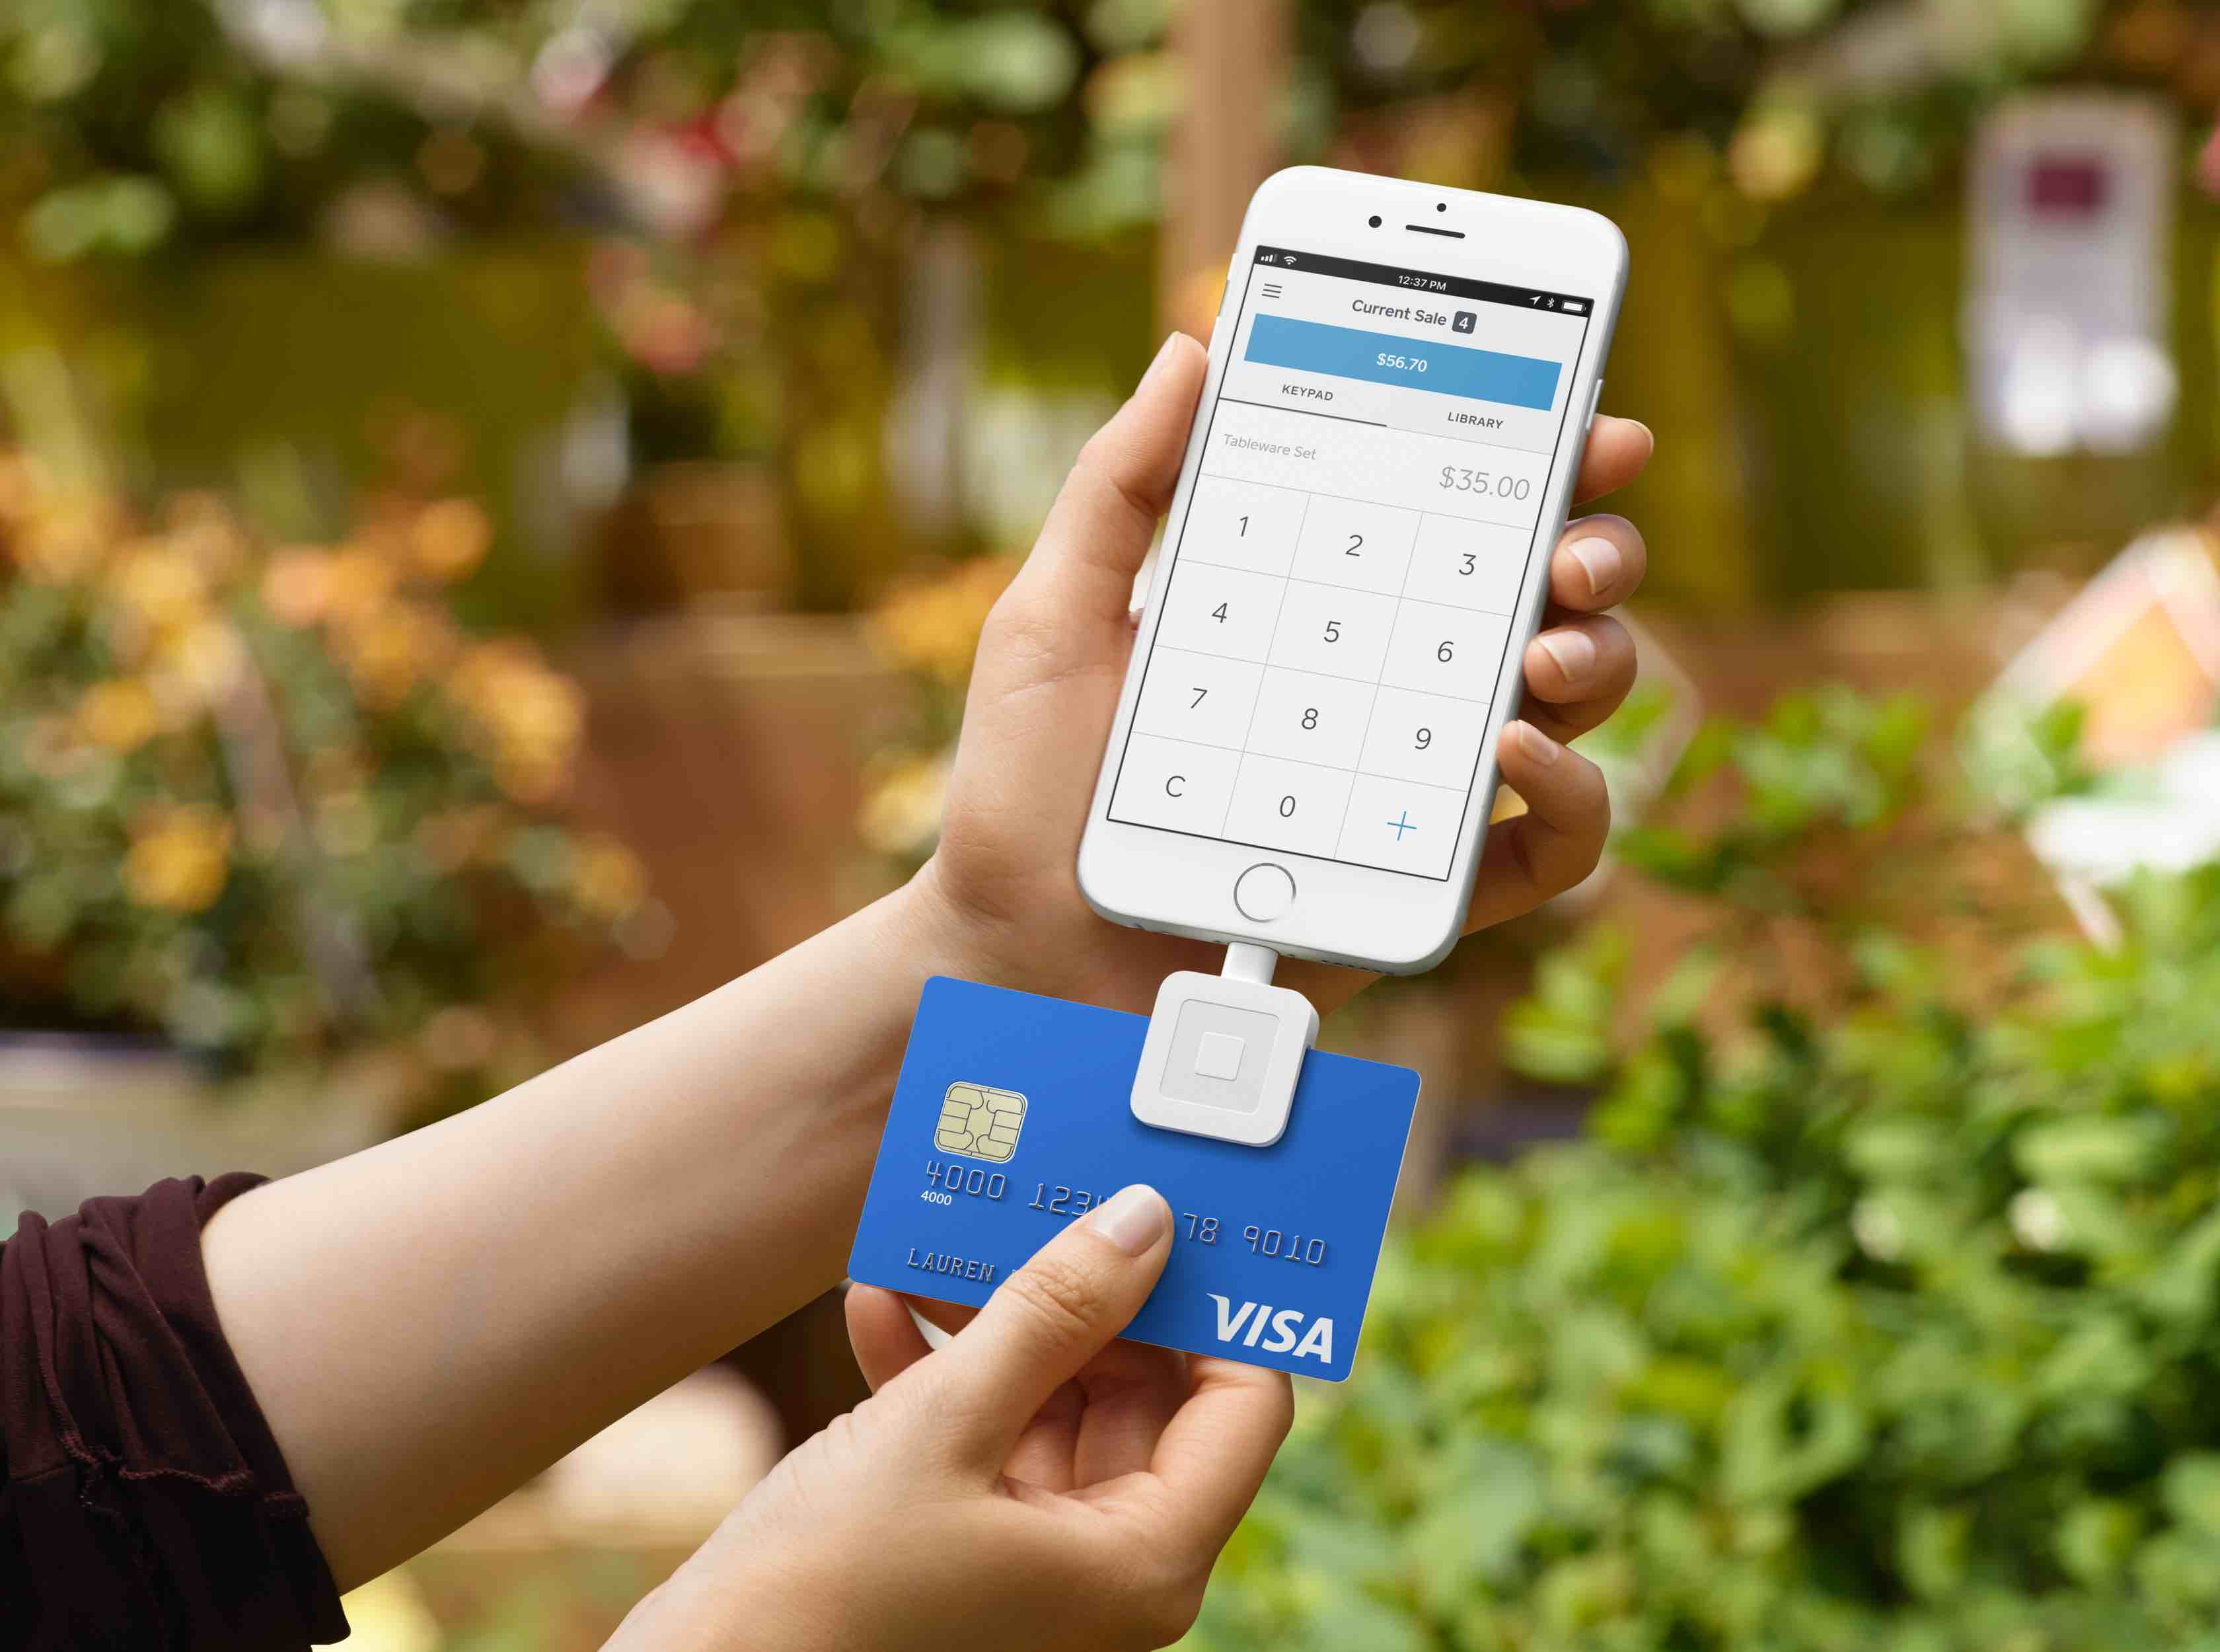 Square Review 2019: Is It Safe and Legit?